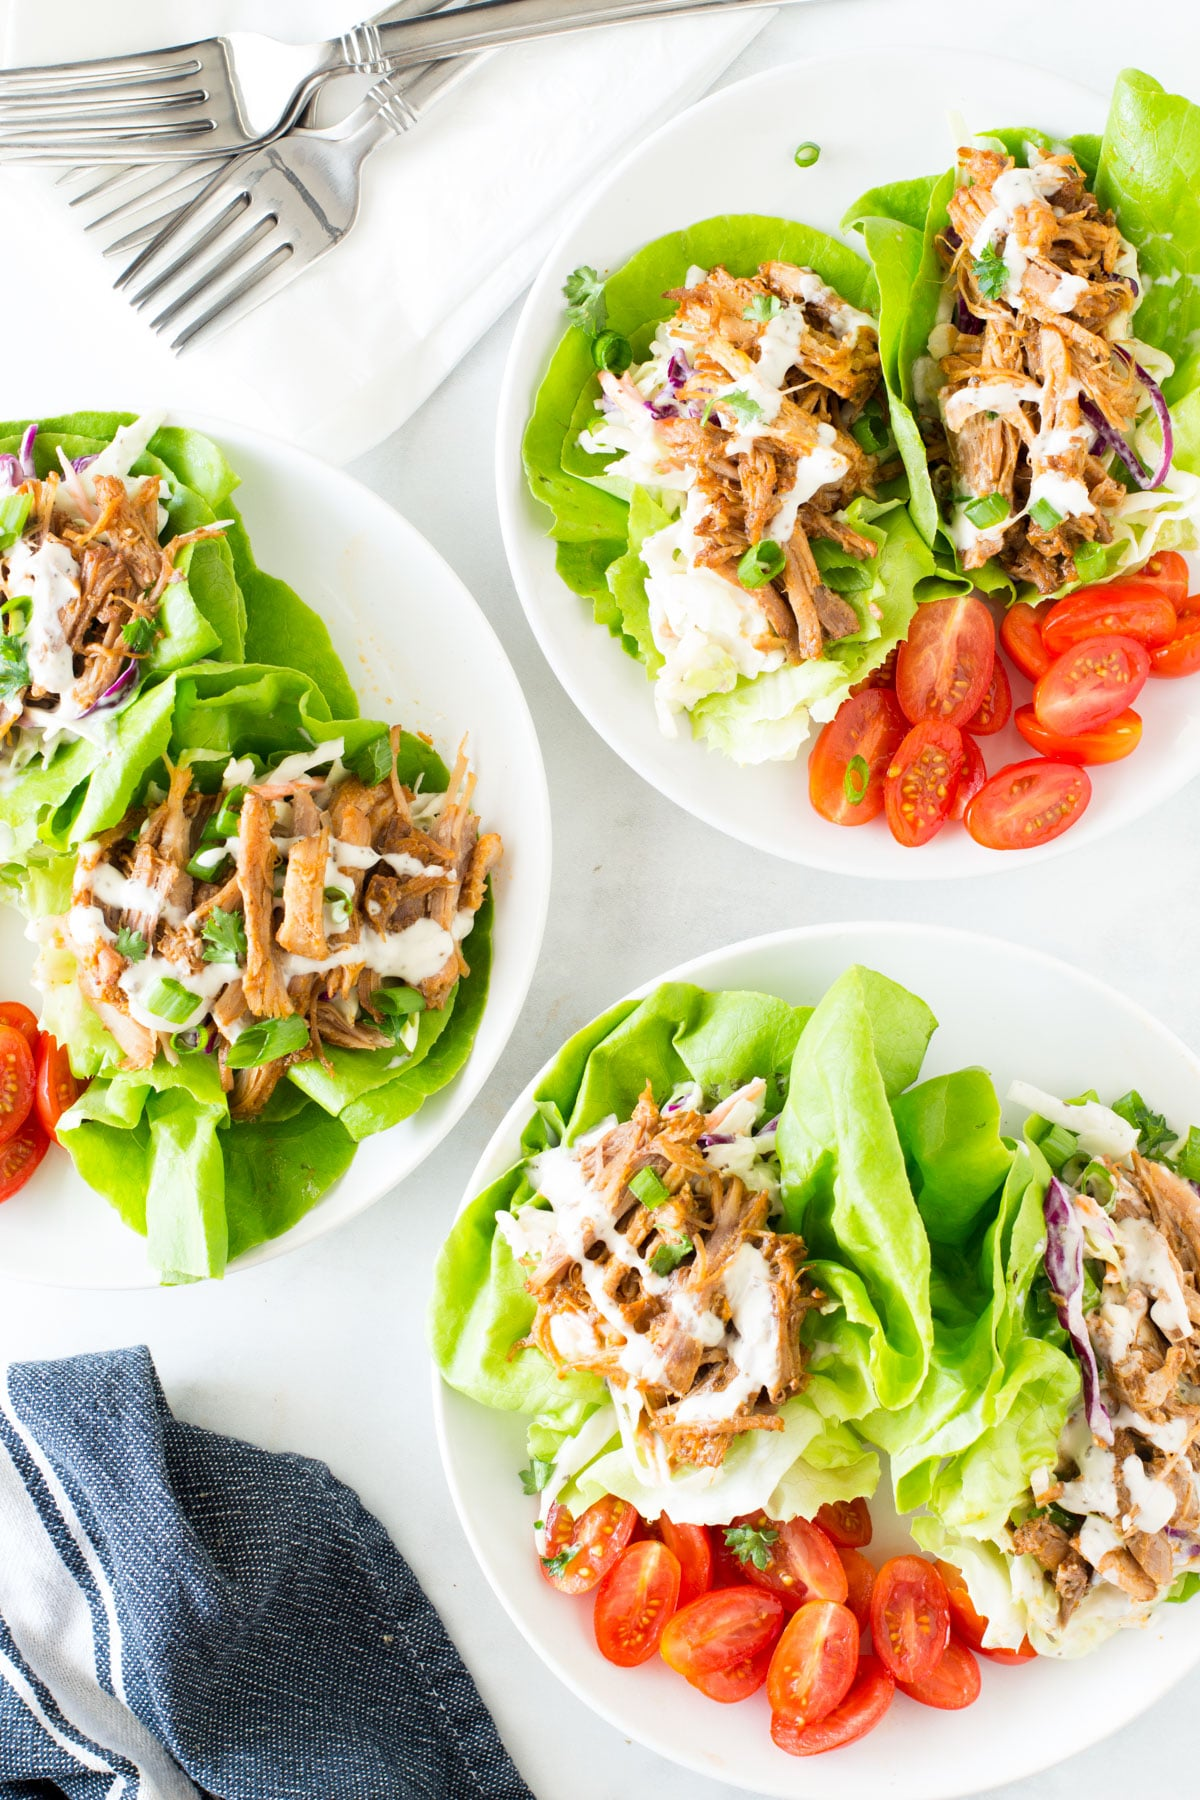 Pulled Pork Lettuce Tacos with Healthy Coleslaw